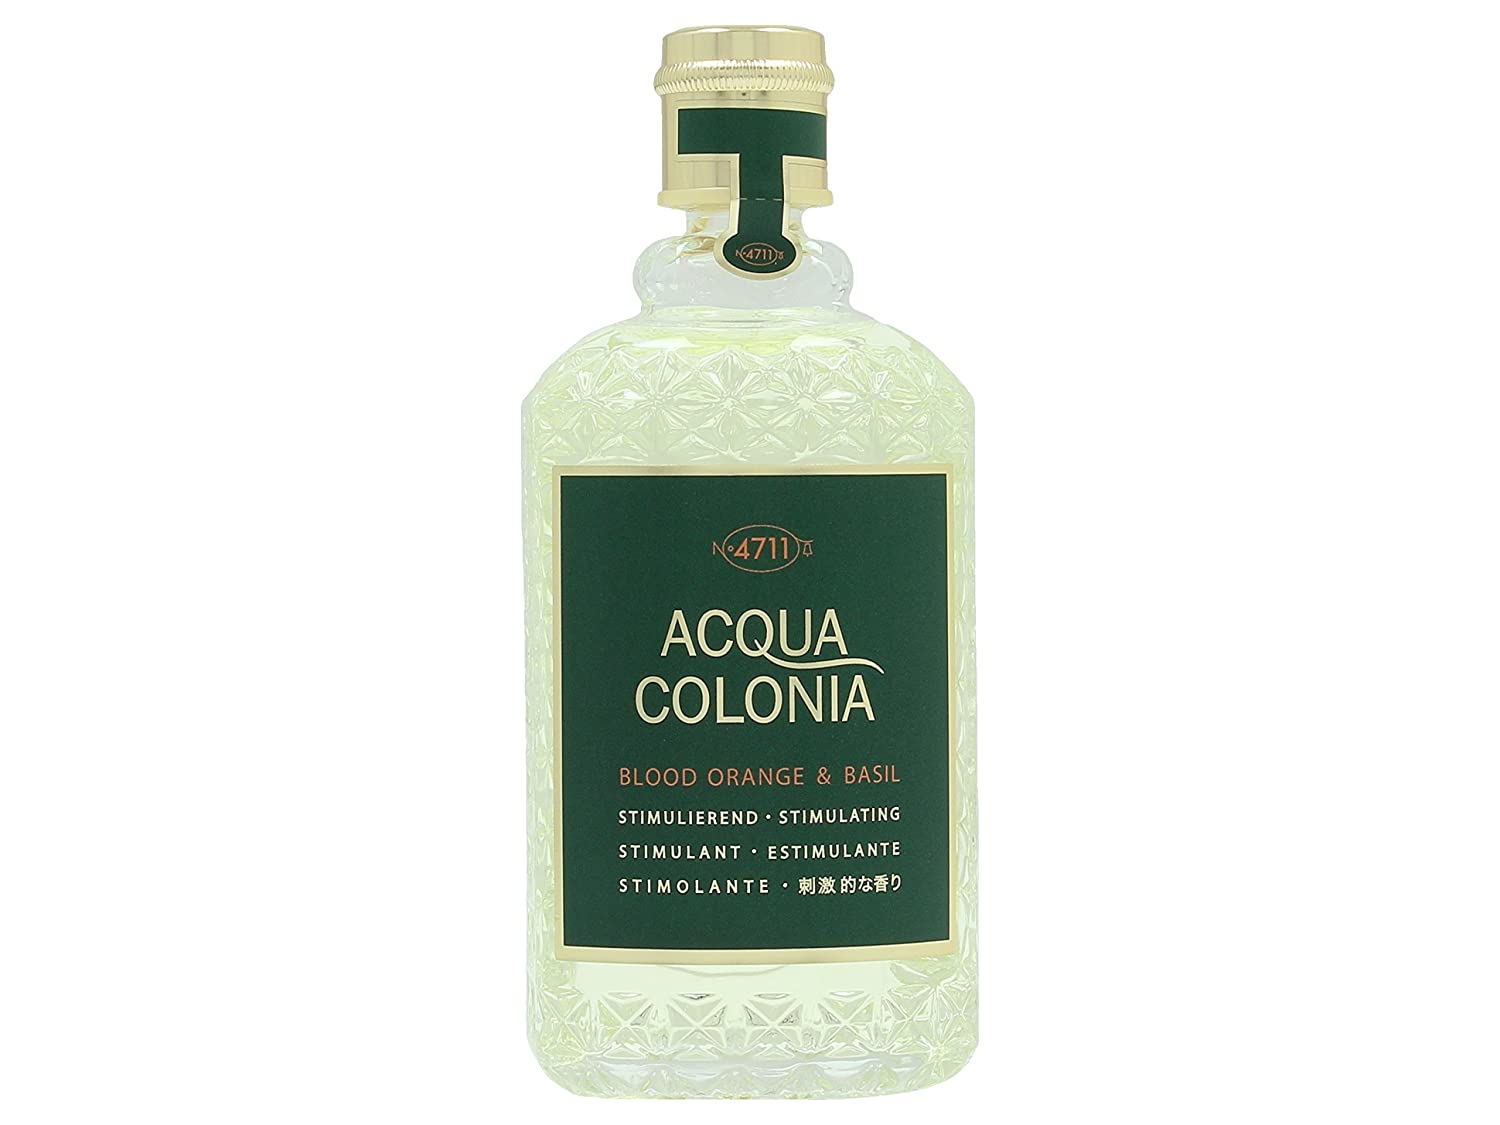 4711 ACQUA COLONIA by 4711 for WOMEN: BLOOD ORANGE & BASIL EAU DE COLOGNE SPRAY 5.7 OZ 2361240